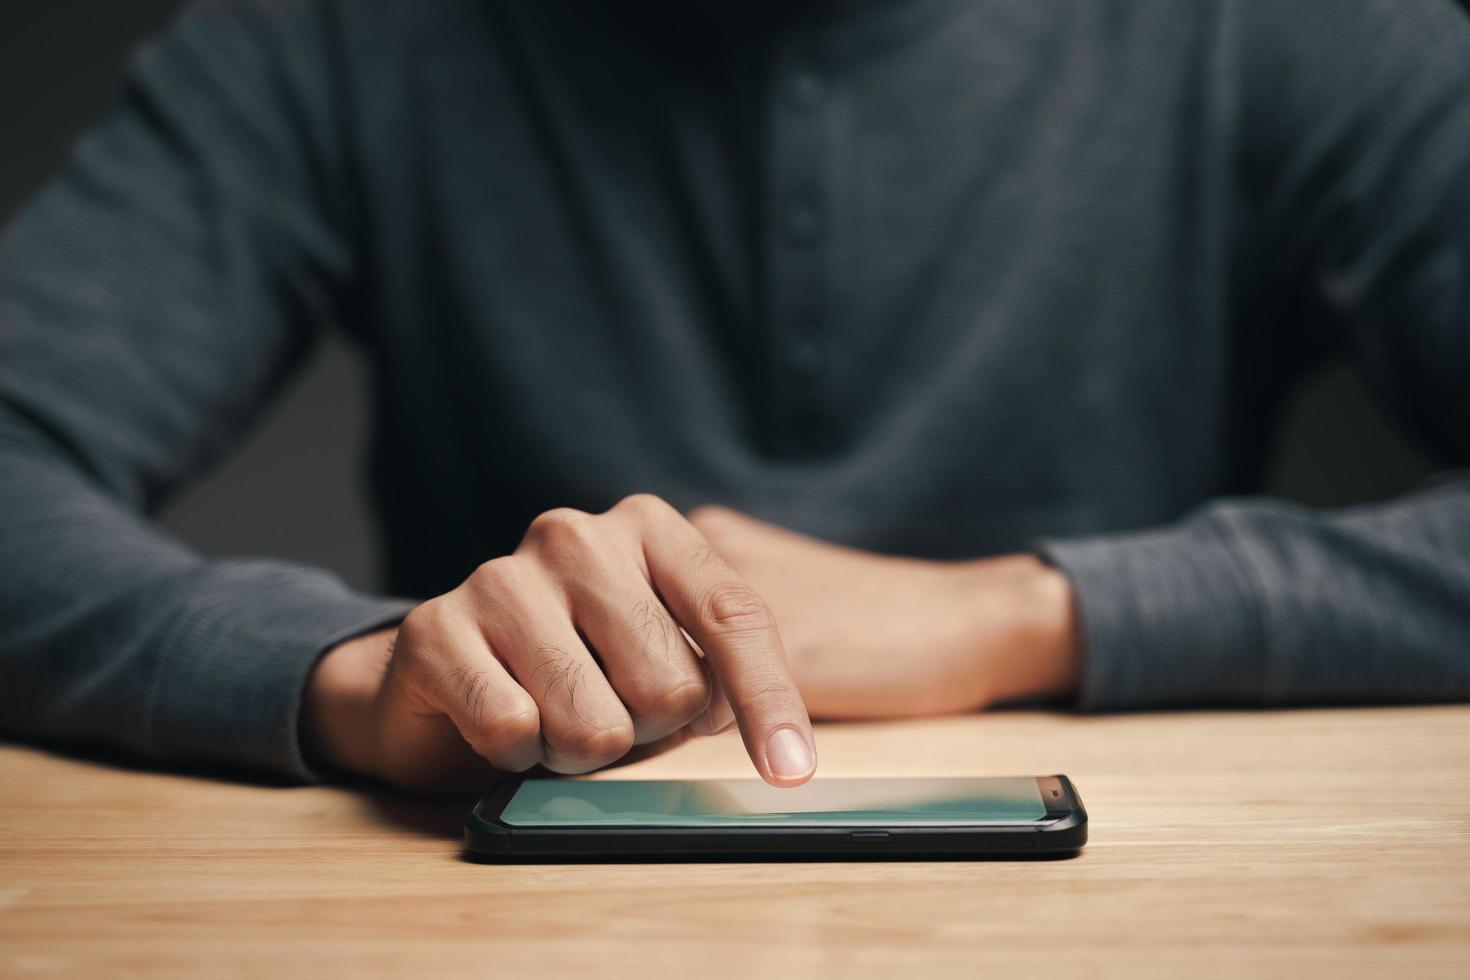 Man using a smartphone on the wooden table, searching, browsing photo